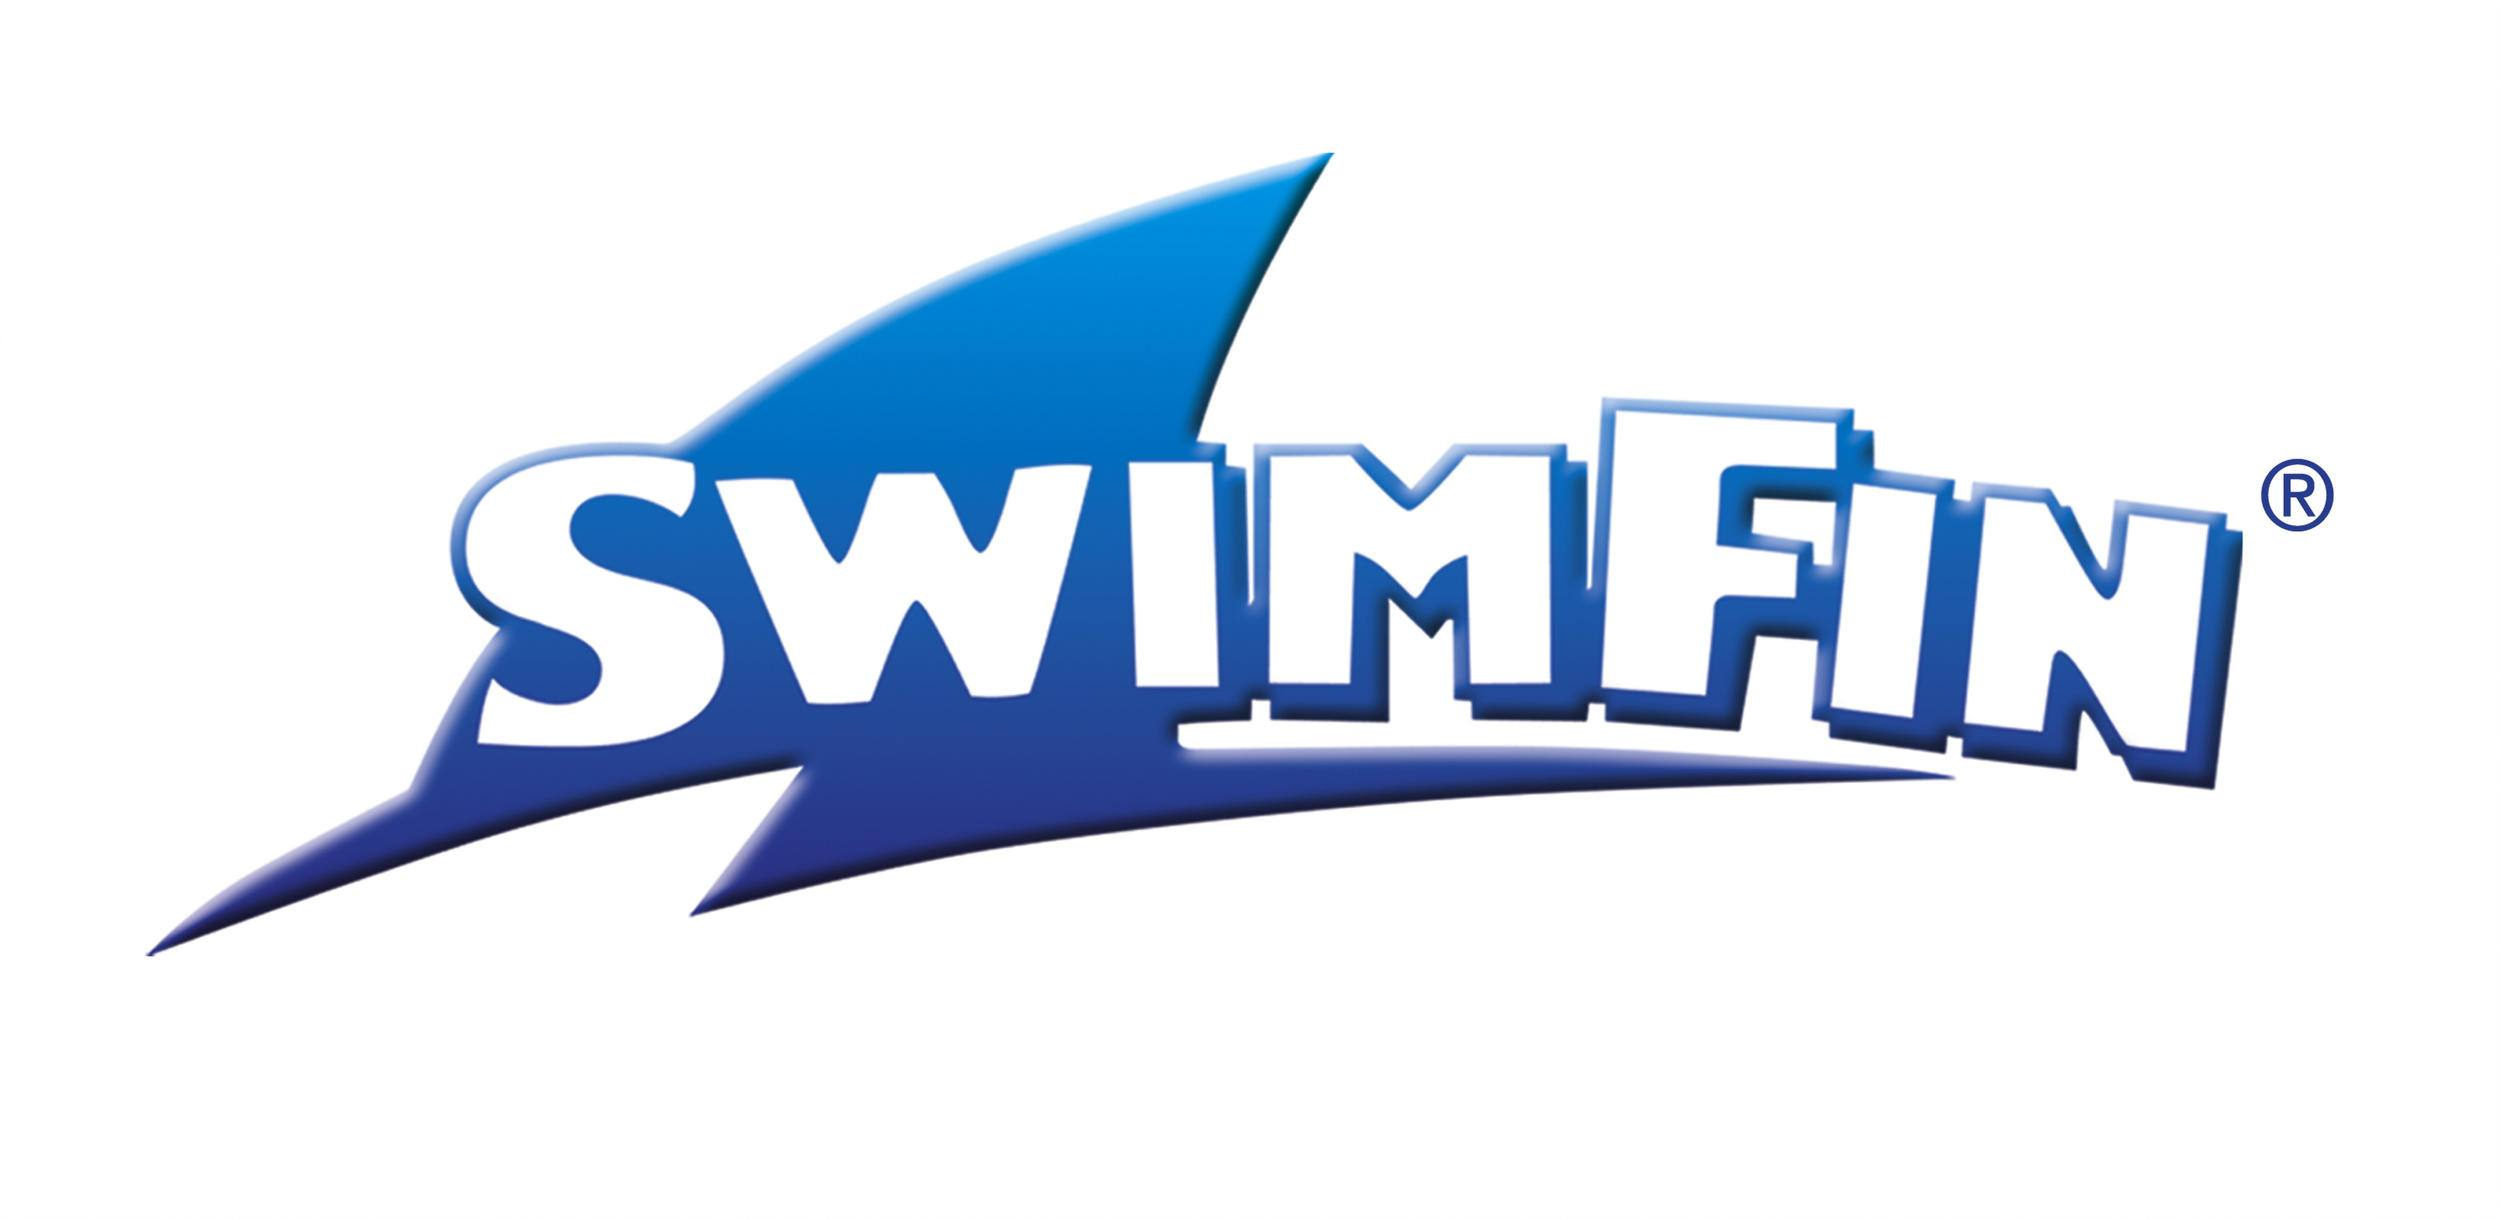 See more from SWIMFIN